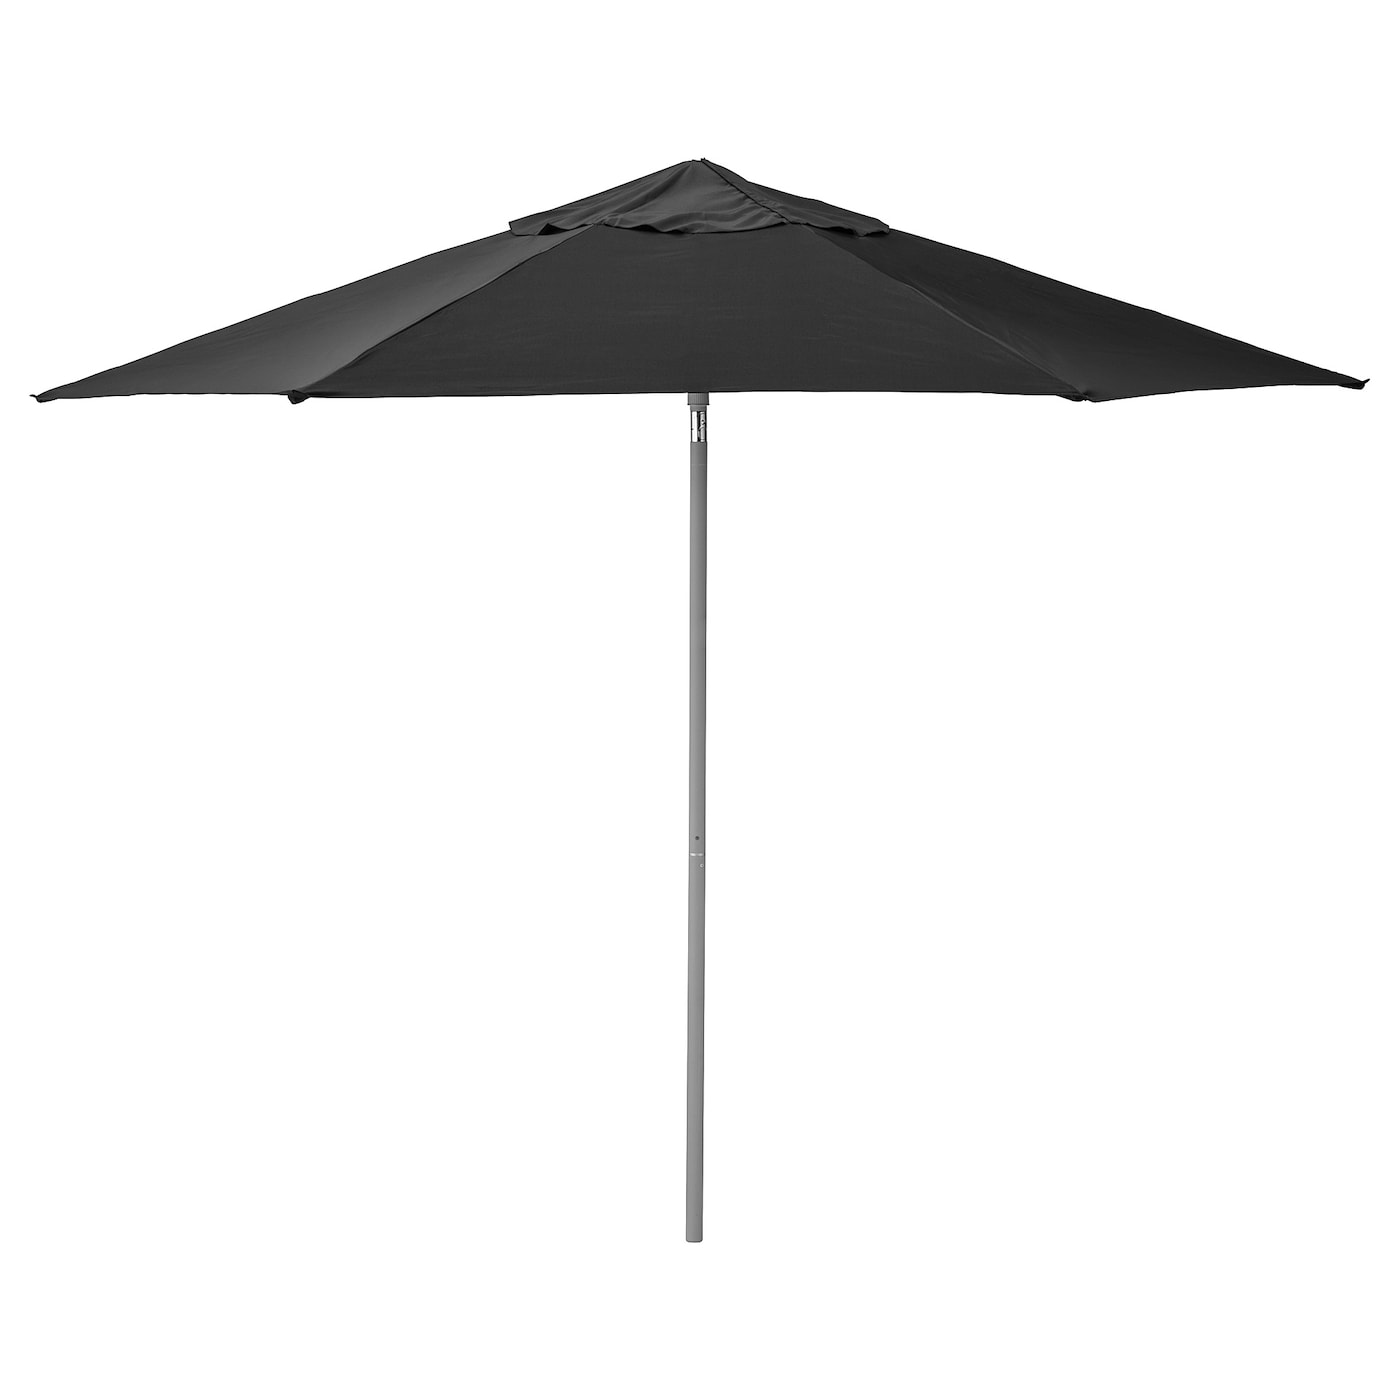 IKEA KUGGÖ/LINDÖJA parasol The colour stays fresh for longer as the fabric is fade resistant.